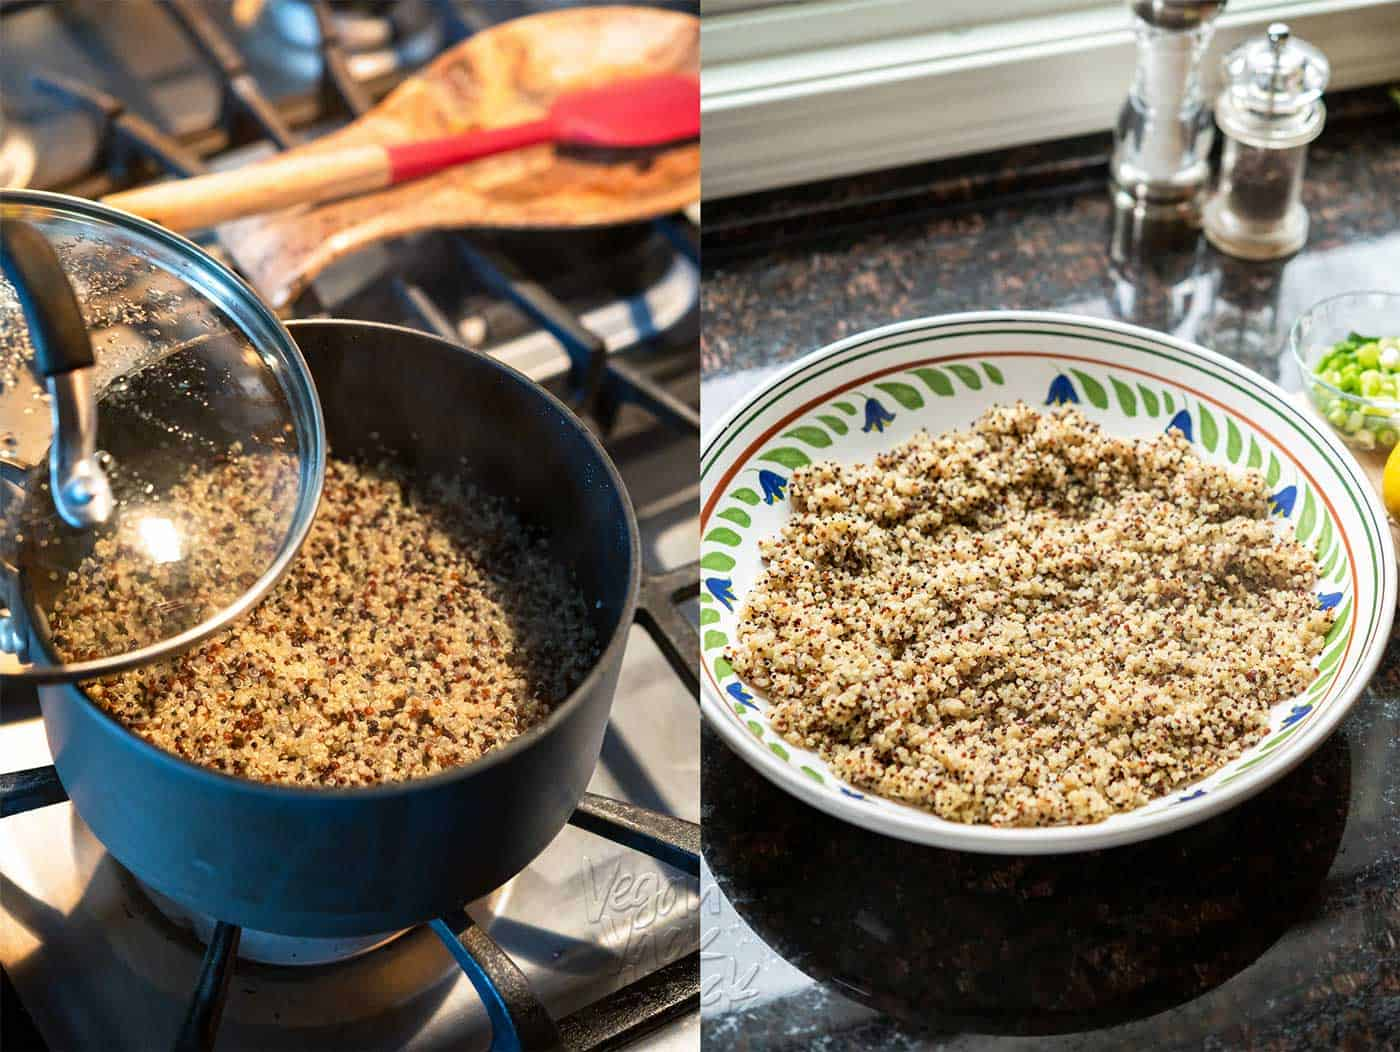 Left image: cooking quinoa in a pot, Right image: Cooked quinoa, fluffed, in a large bowl